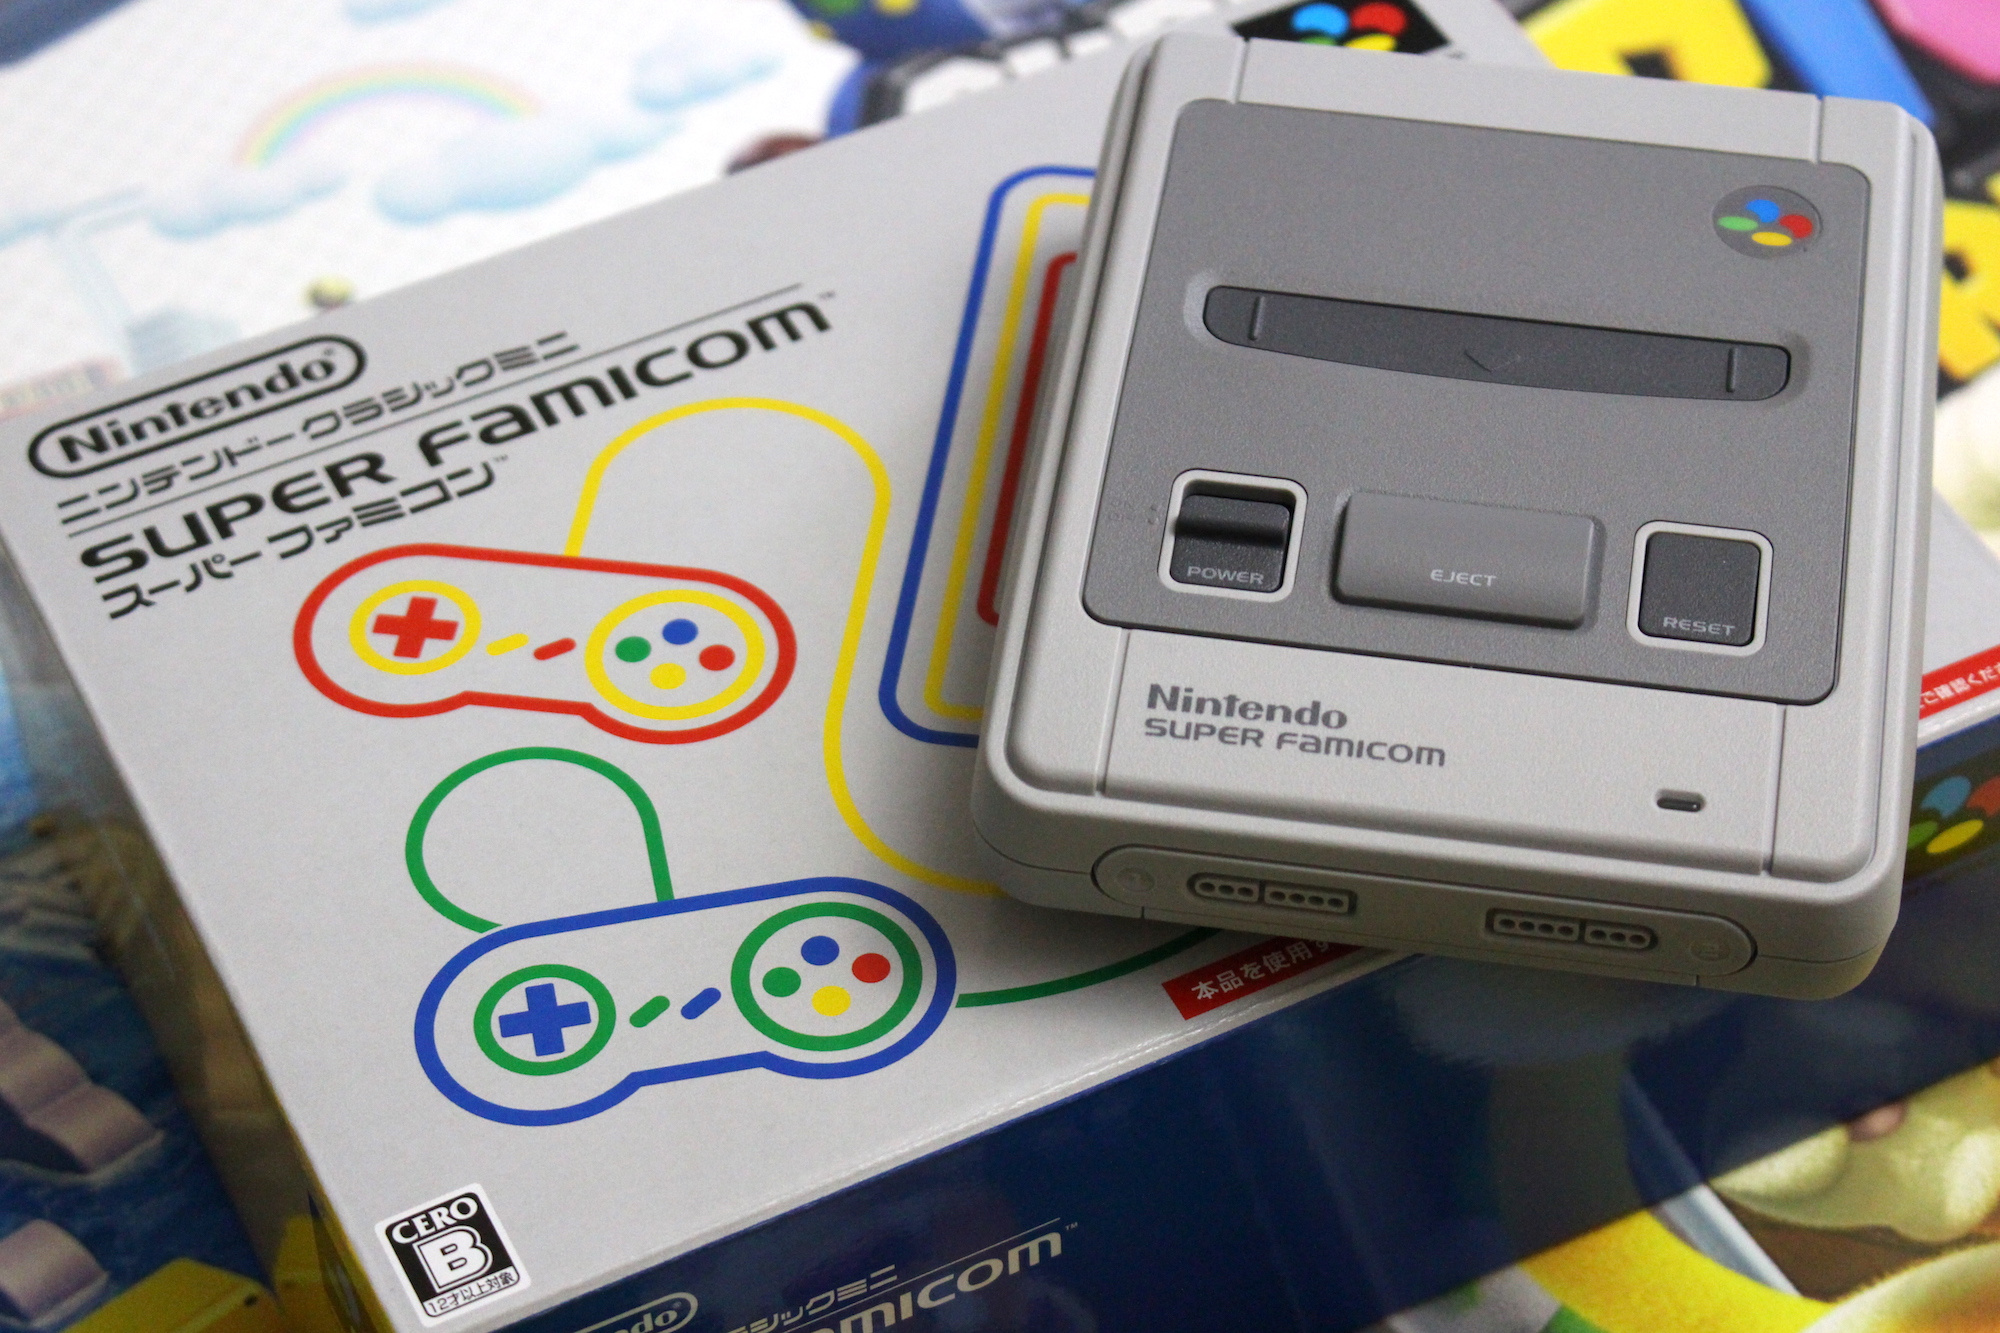 Hardware Review: The Super Famicom Mini Is For Hardcore Collectors